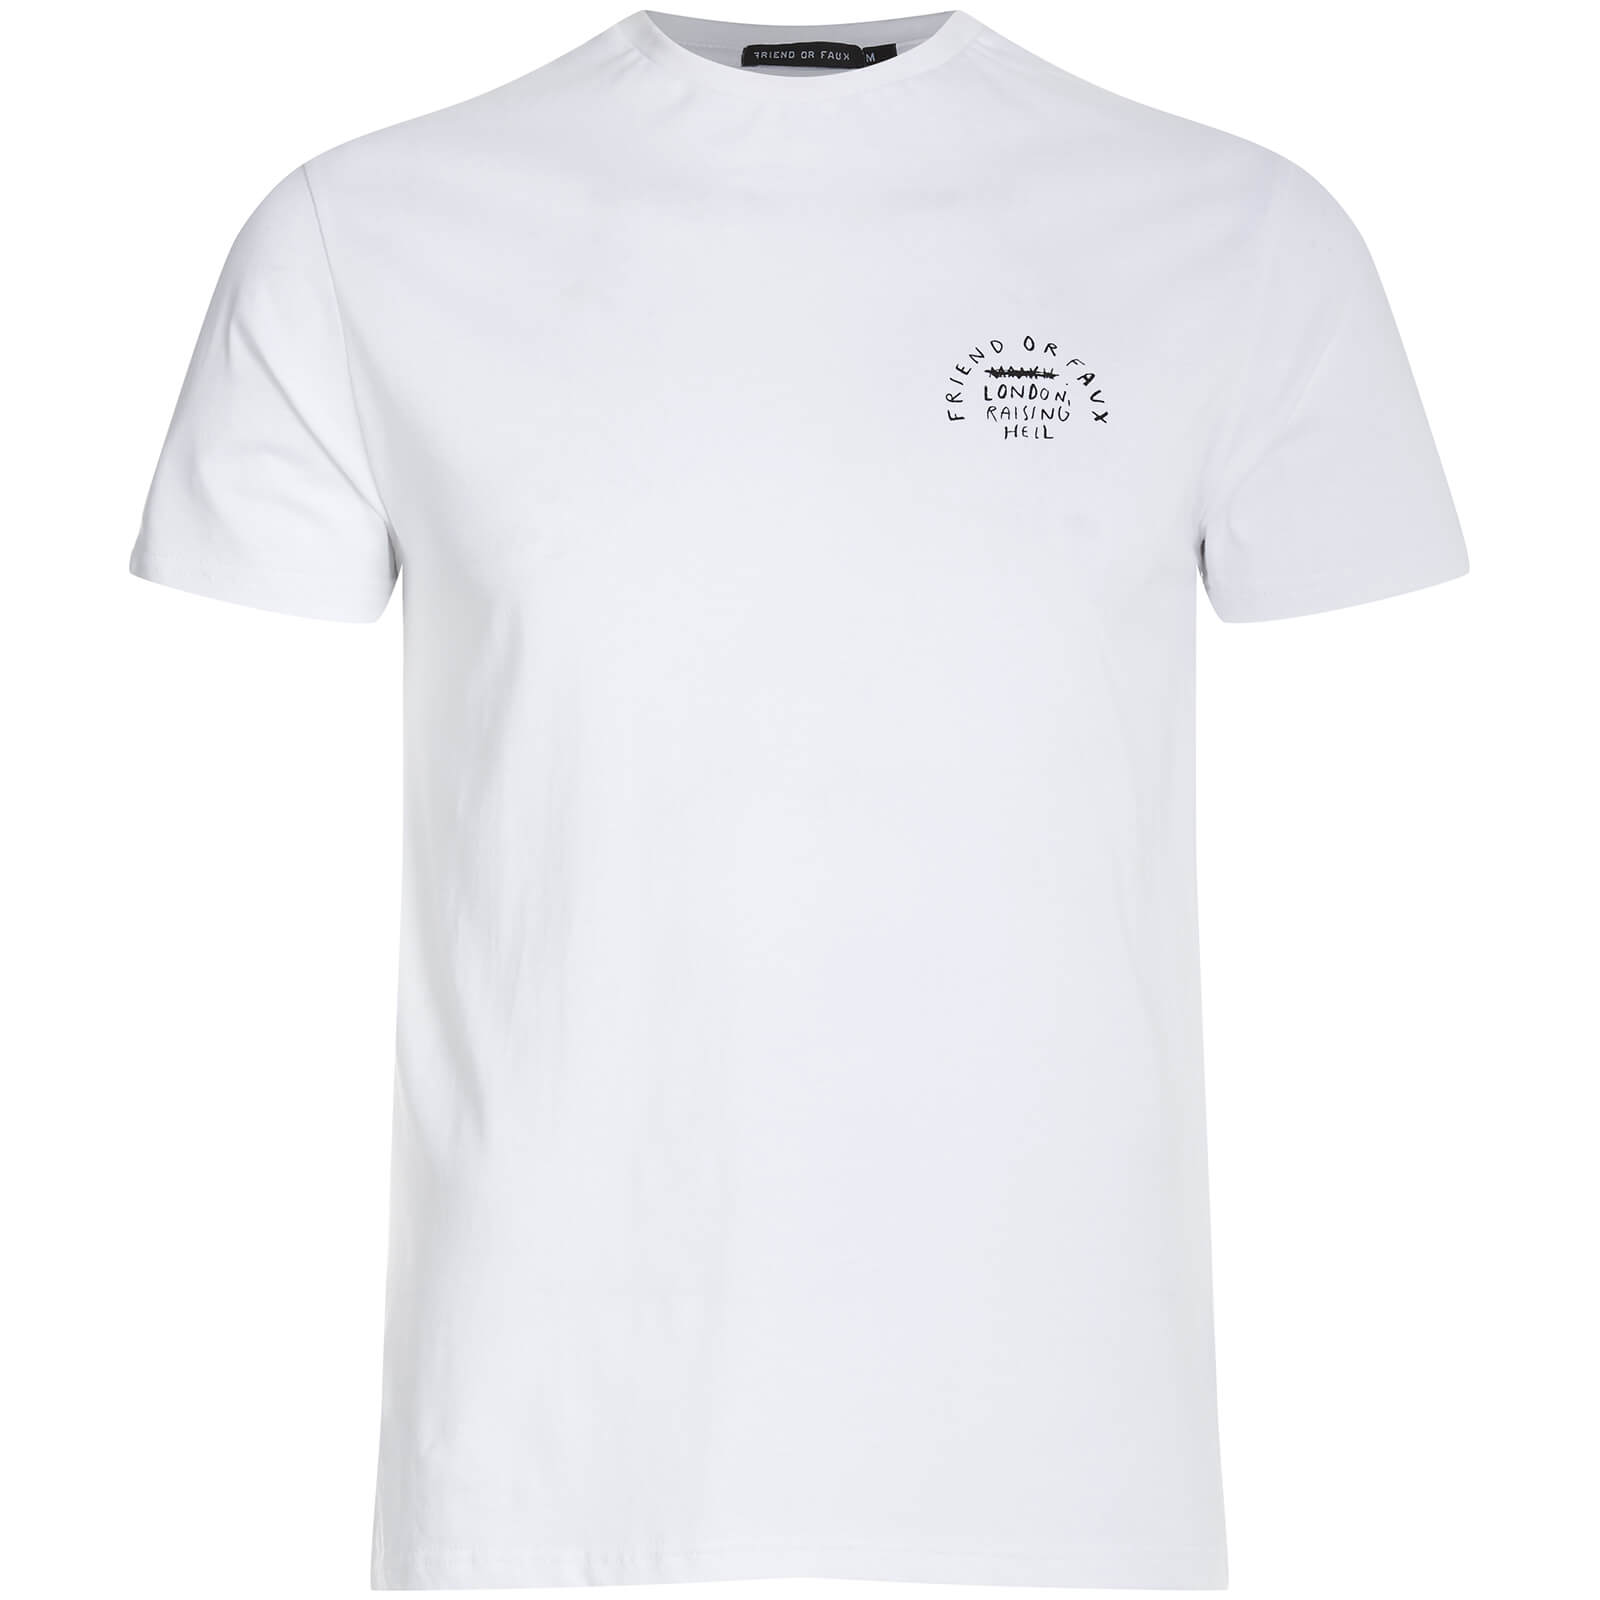 T-Shirt Homme Sky Rat Friend or Faux -Blanc